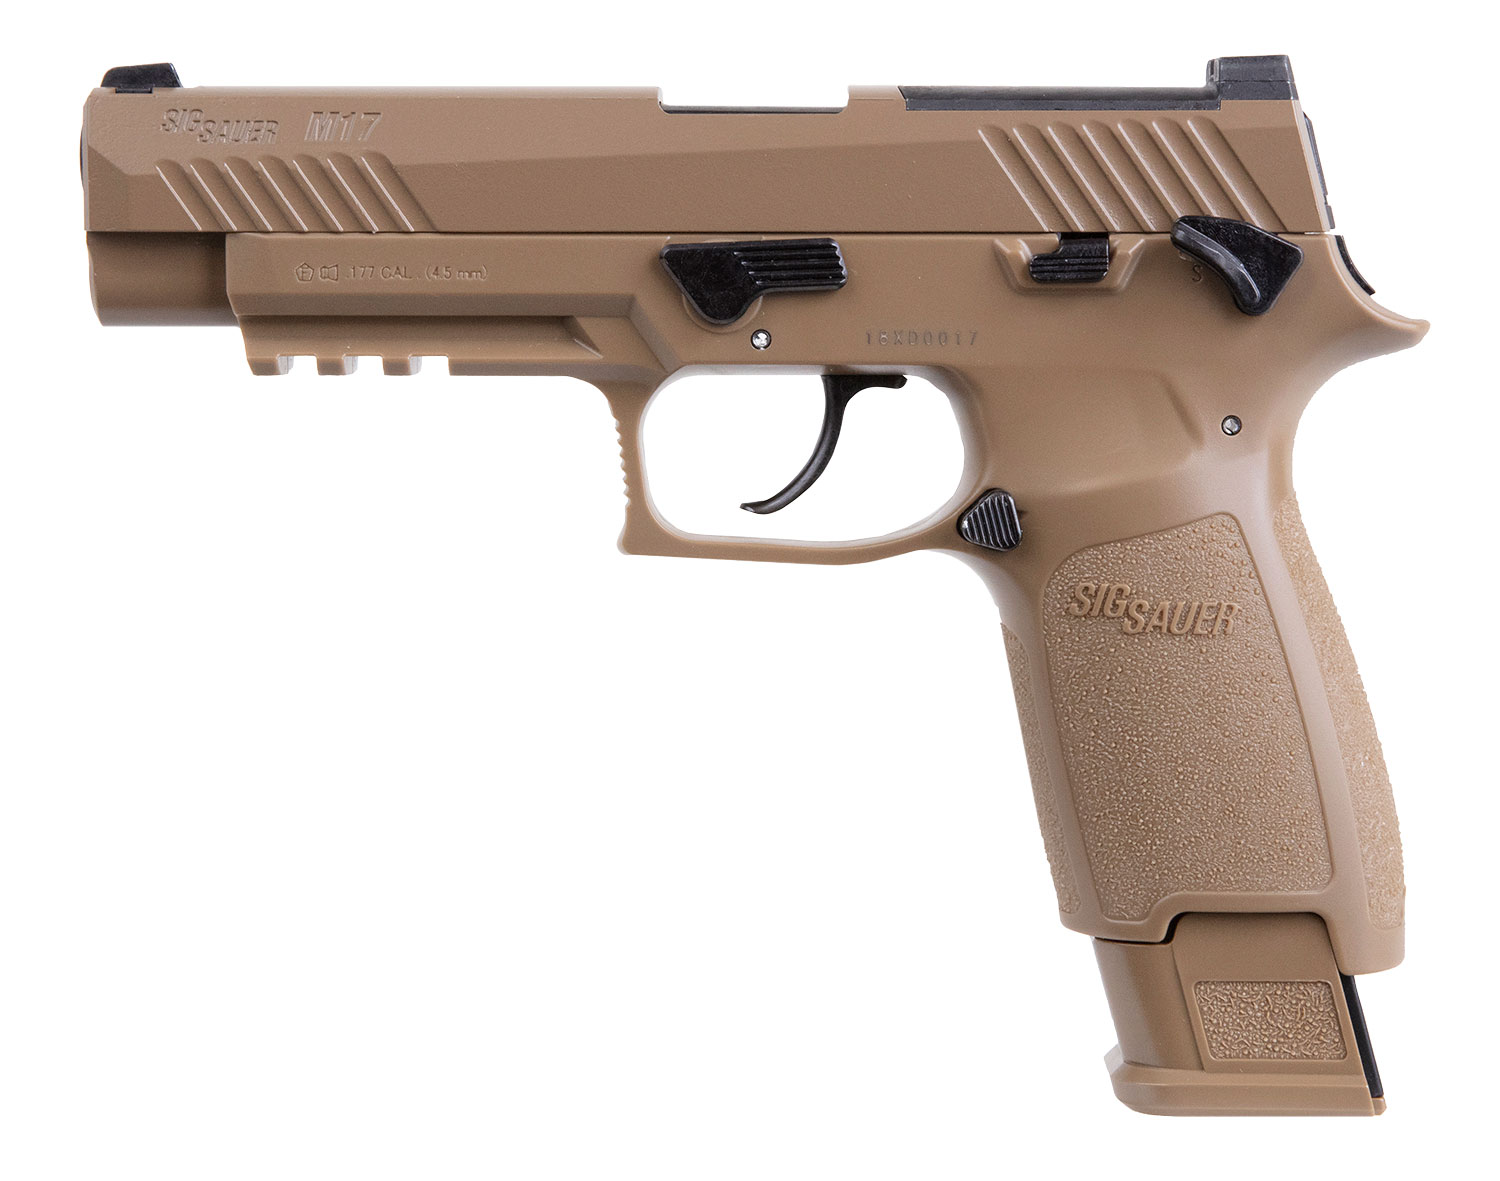 Sig Sauer Airguns AIRM17177 P320 M17 ASP Air Pistol Double CO2 .177 Pellet 20 rd Coyote Polymer Frame Coyote Stainless Steel PVD Slide